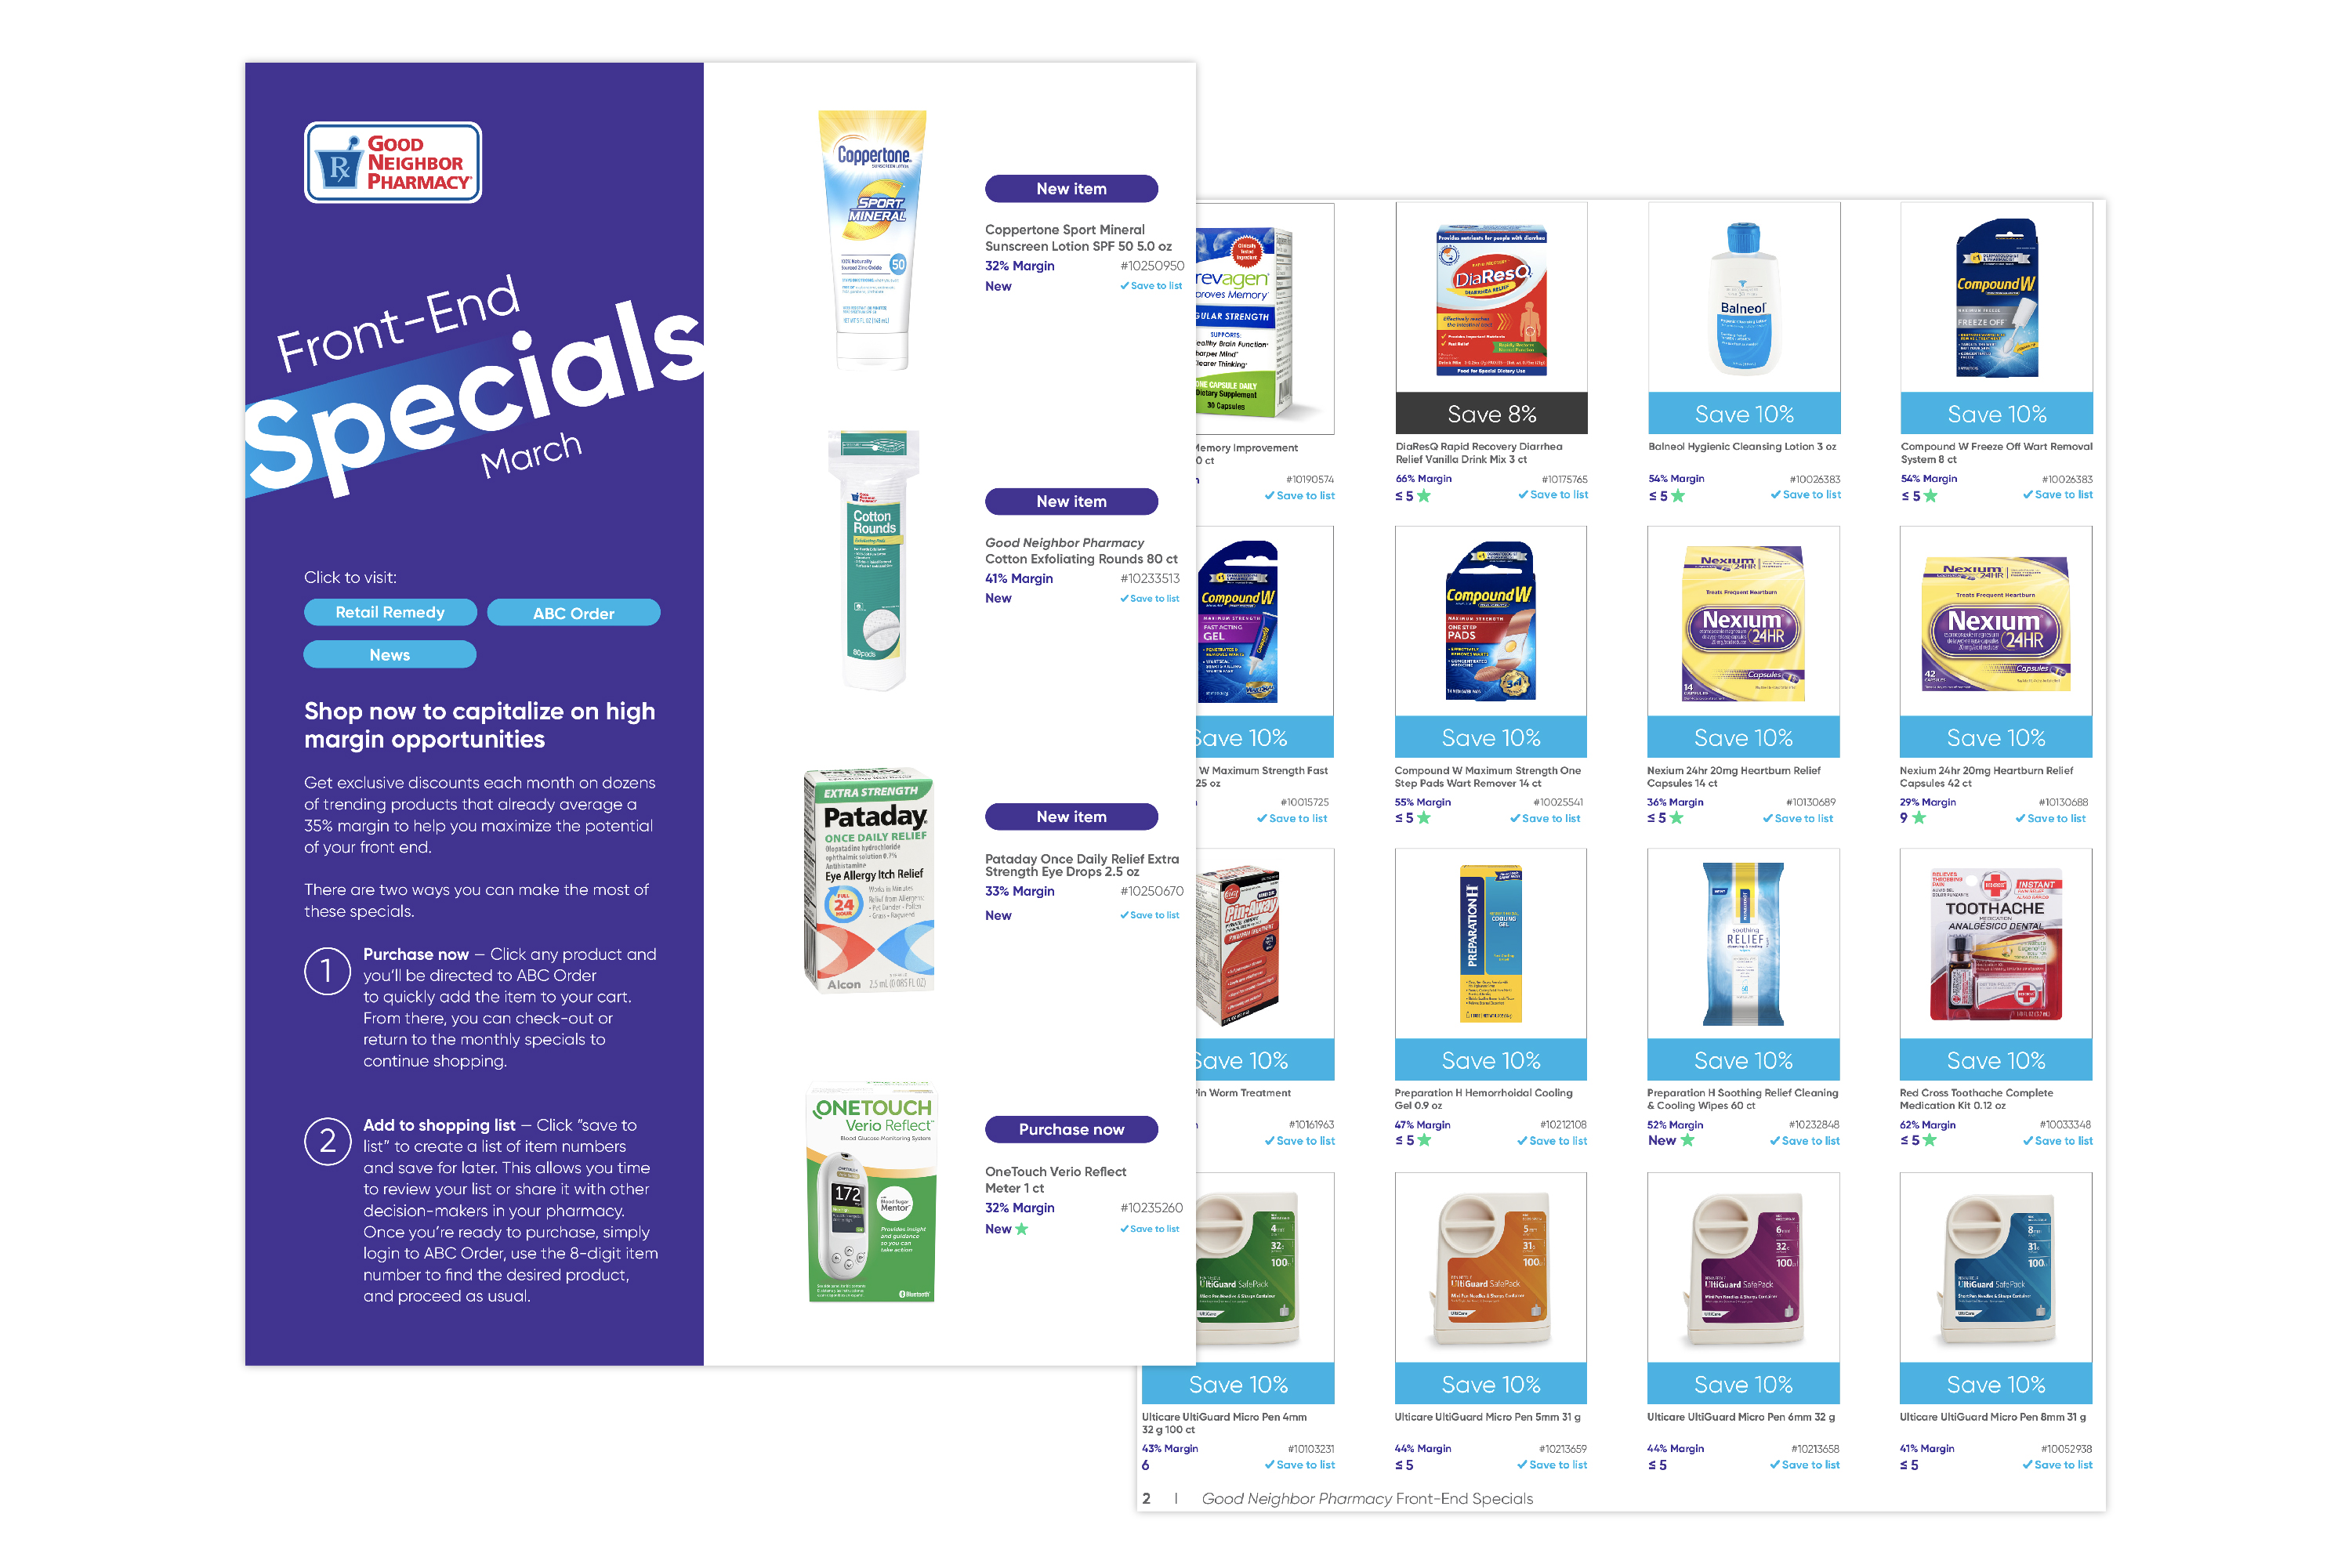 Good Neighbor Pharmacy Front-End Specials Catalogue